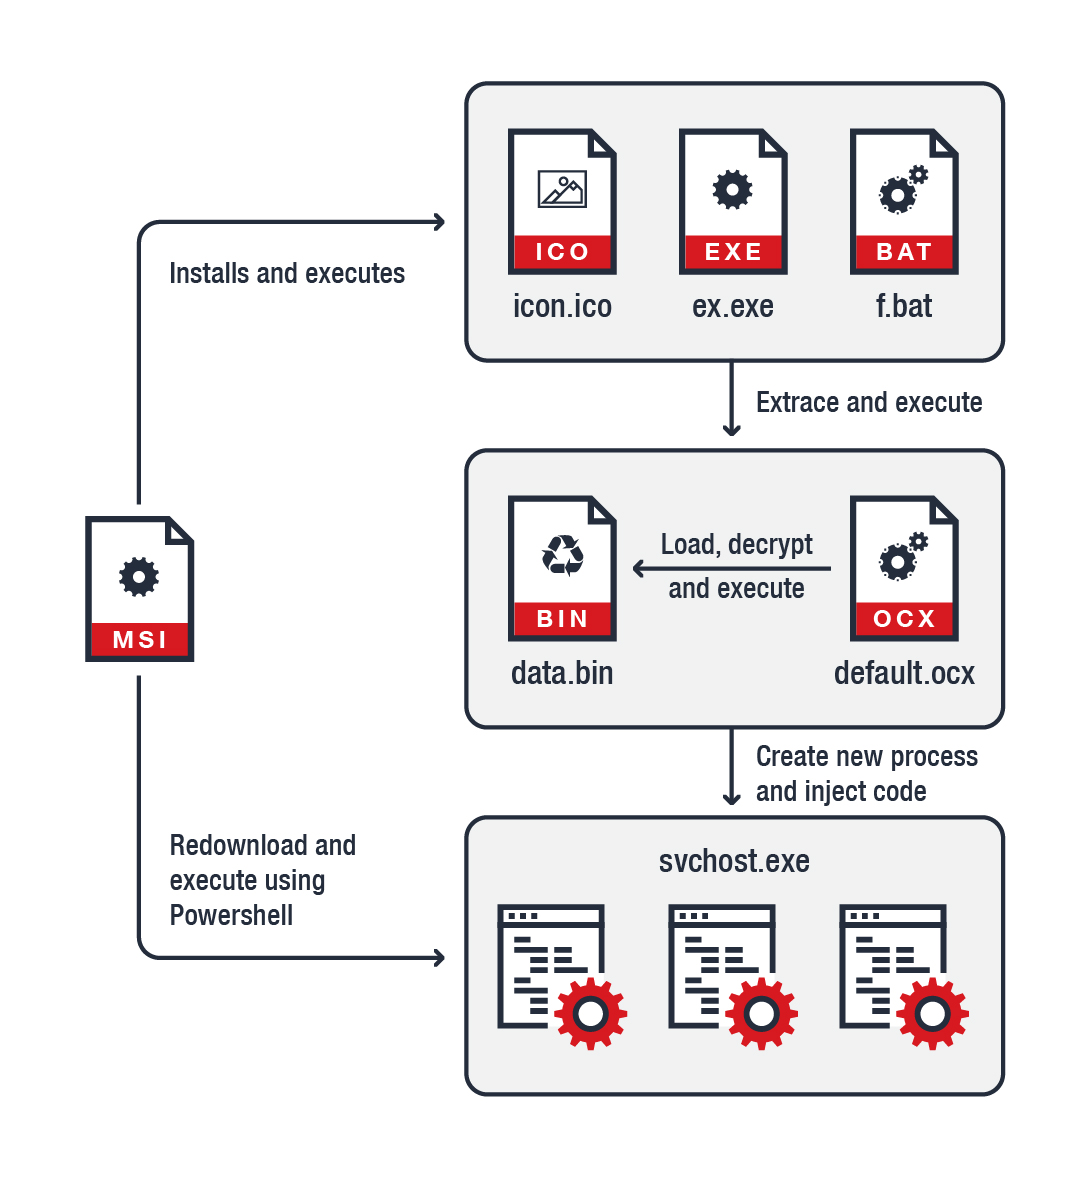 Figure 1. Infection chain for the malware